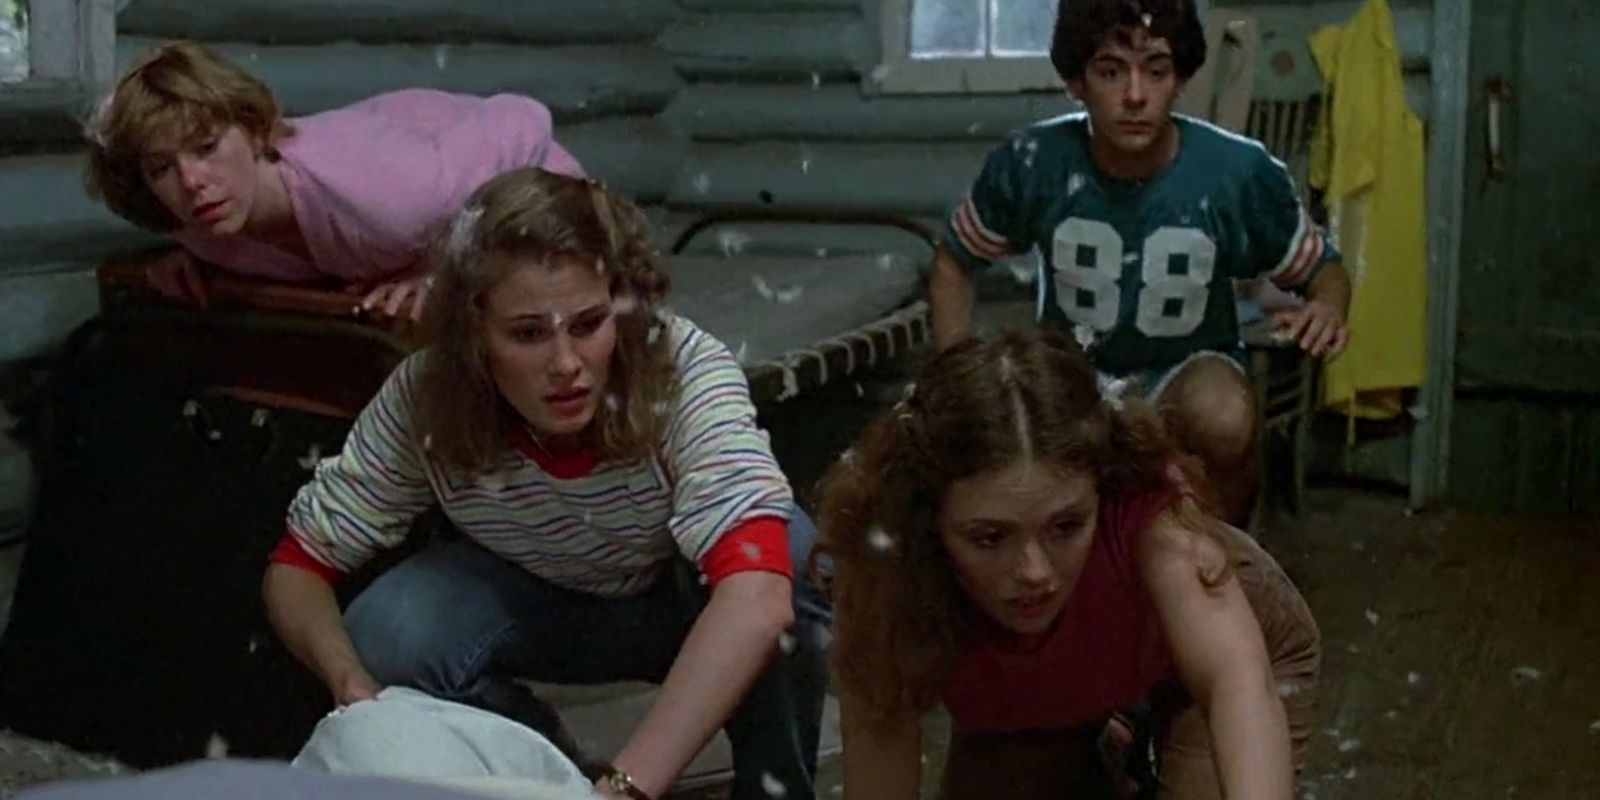 Friday the 13th (1980) - Summer Movie Series